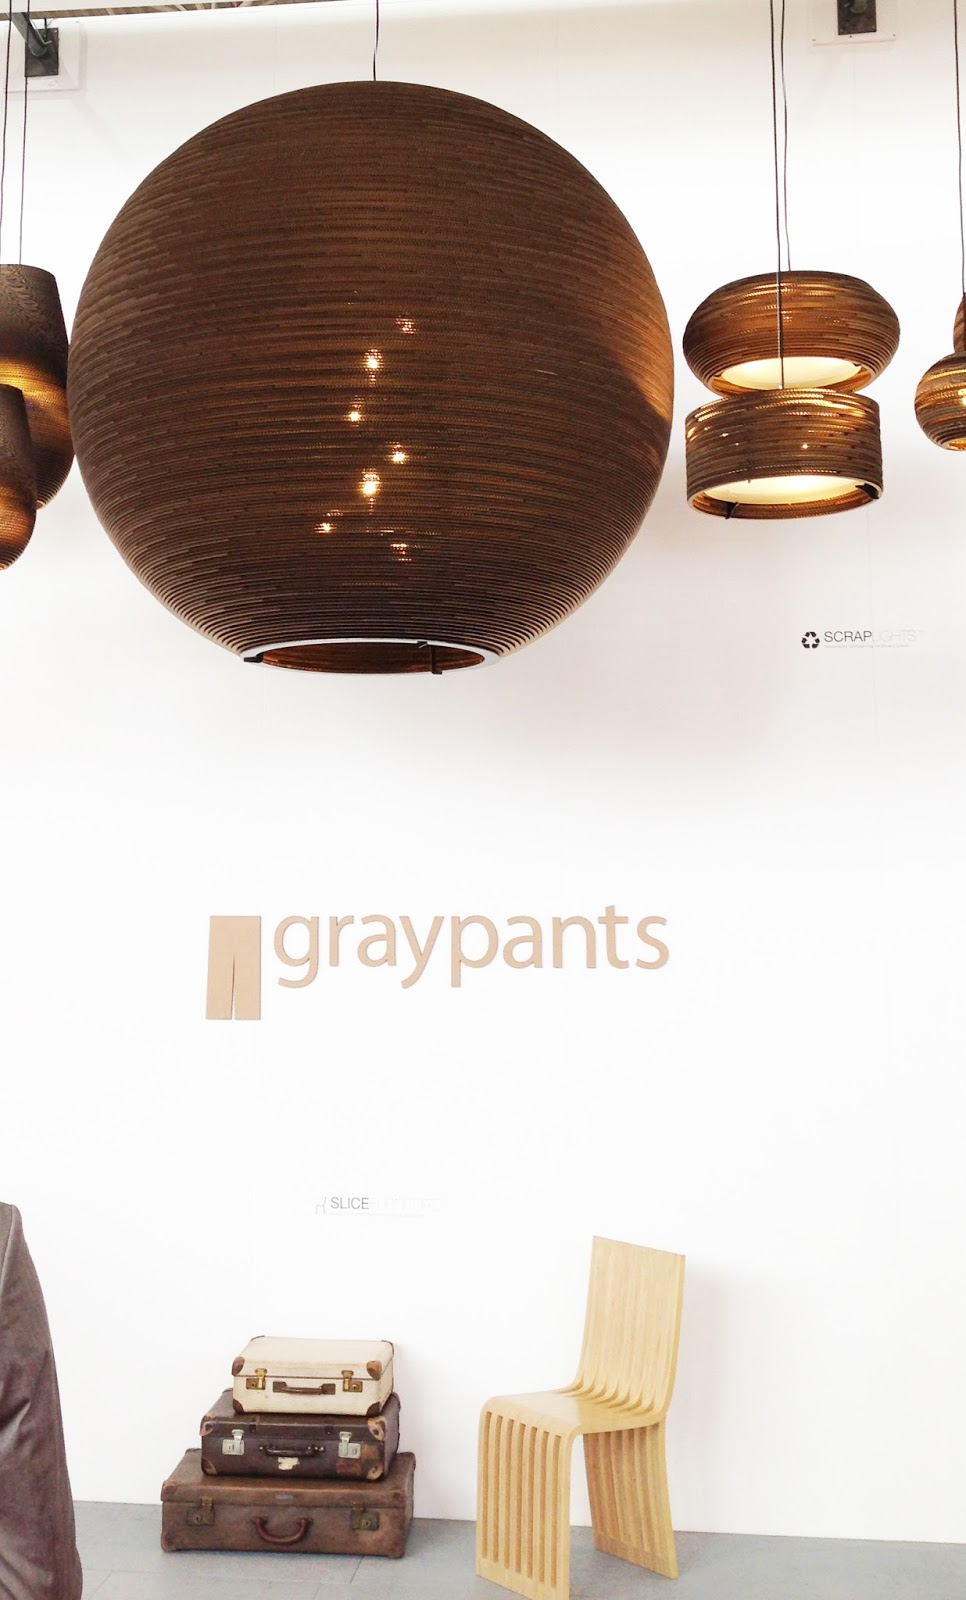 Interesting lighting fixtures at graypants an innovative group of young partners working in a sustainable manner. Featured below is a 6 ft. diameter ... & Design Guy: Day 3 Part I: Maison u0026 Objet Paris azcodes.com